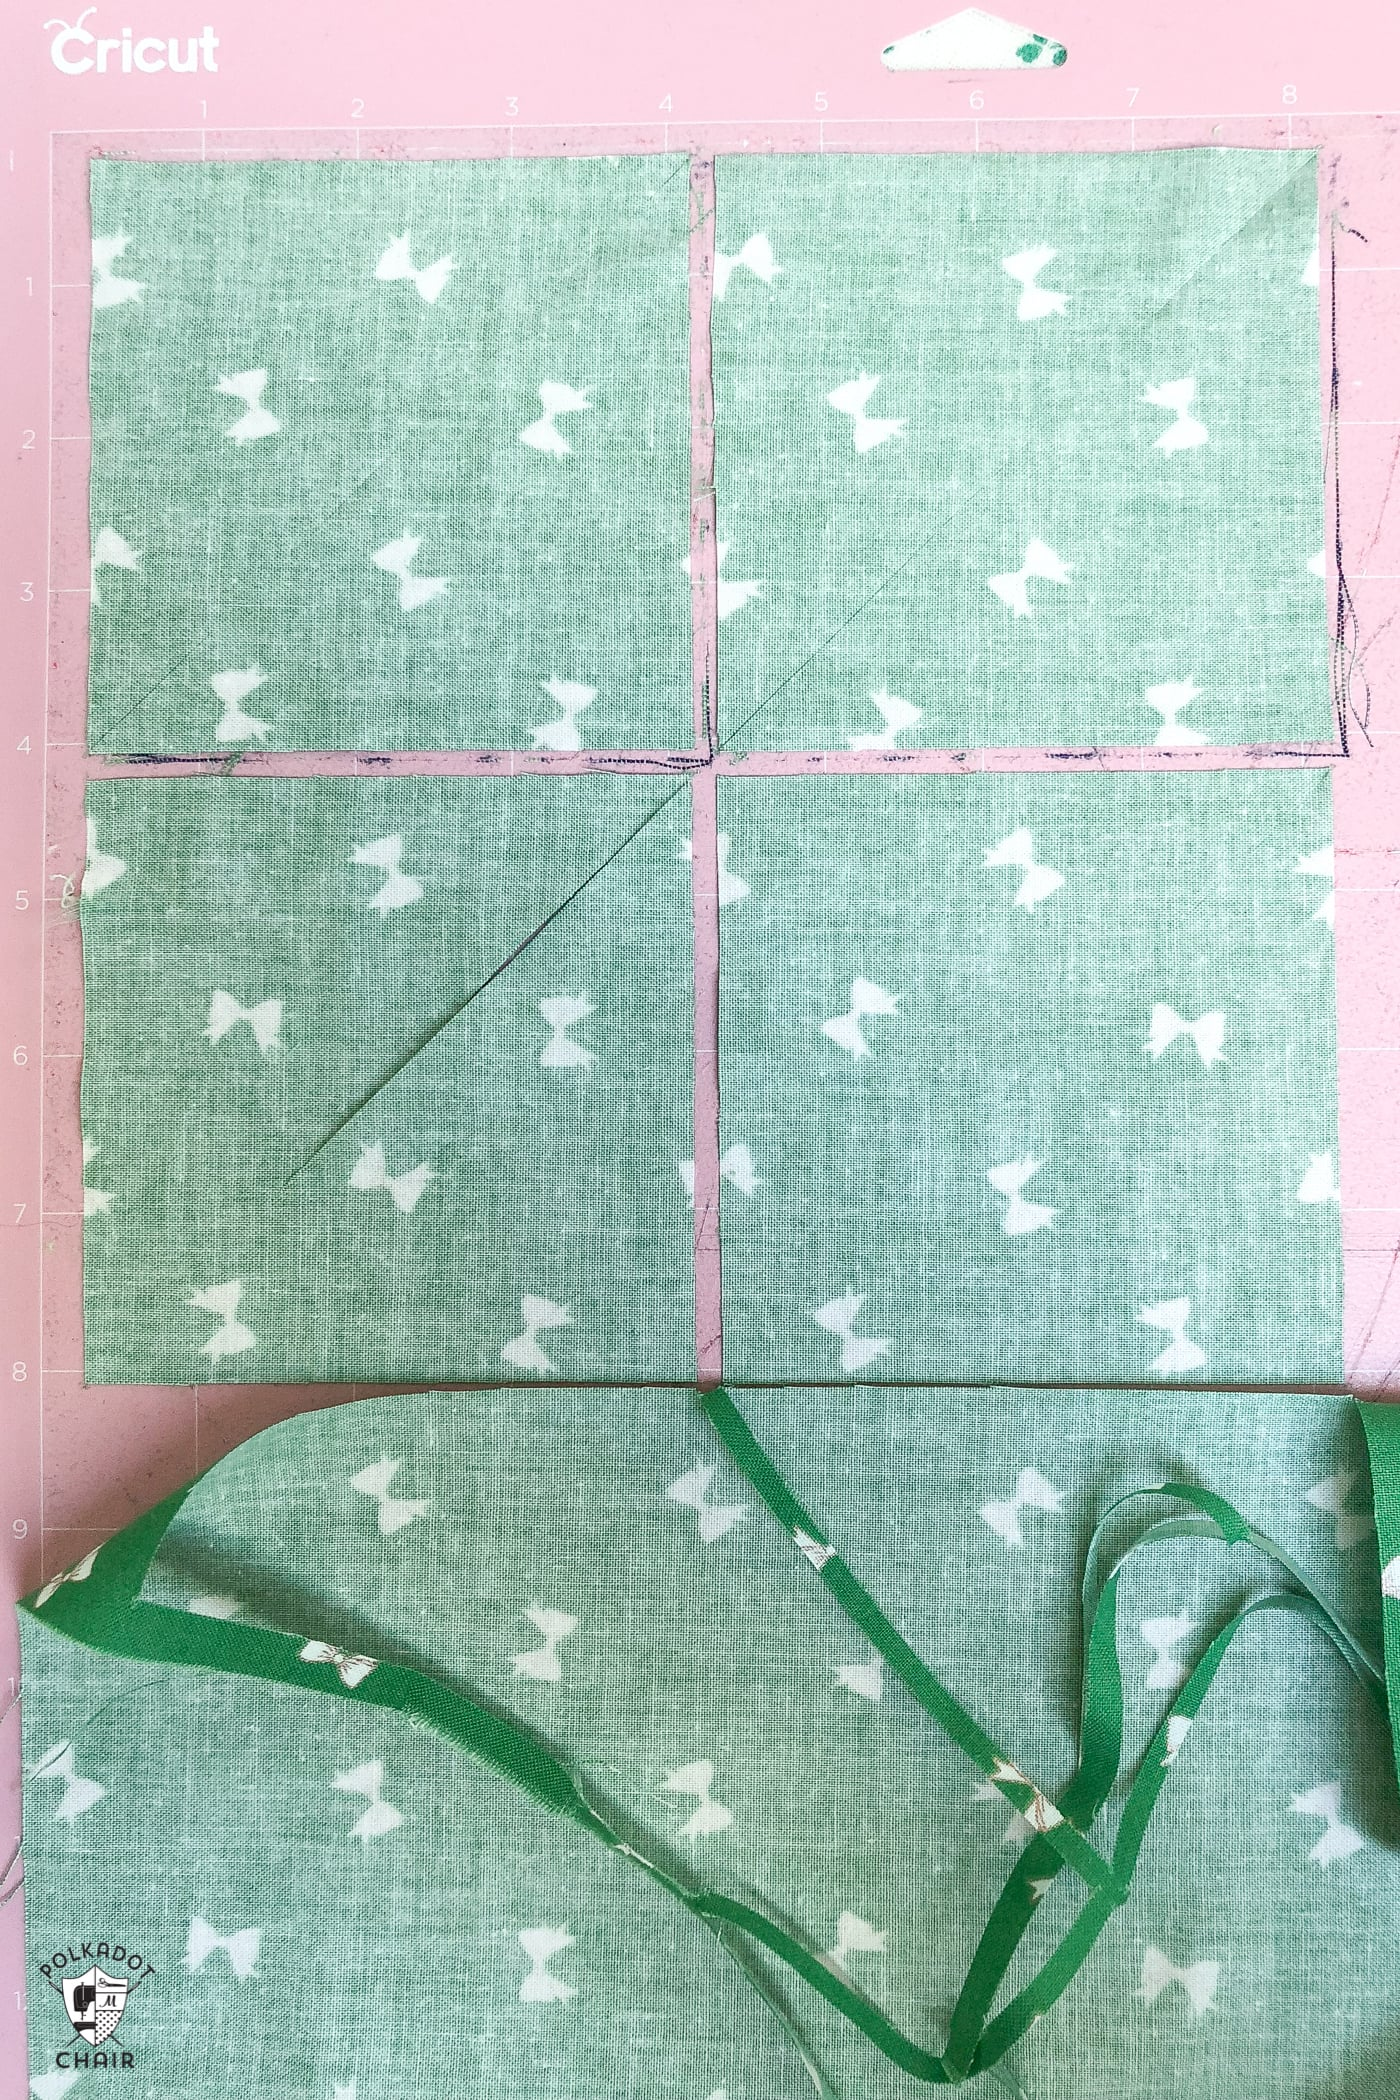 How to cut half square triangles with the cricut maker